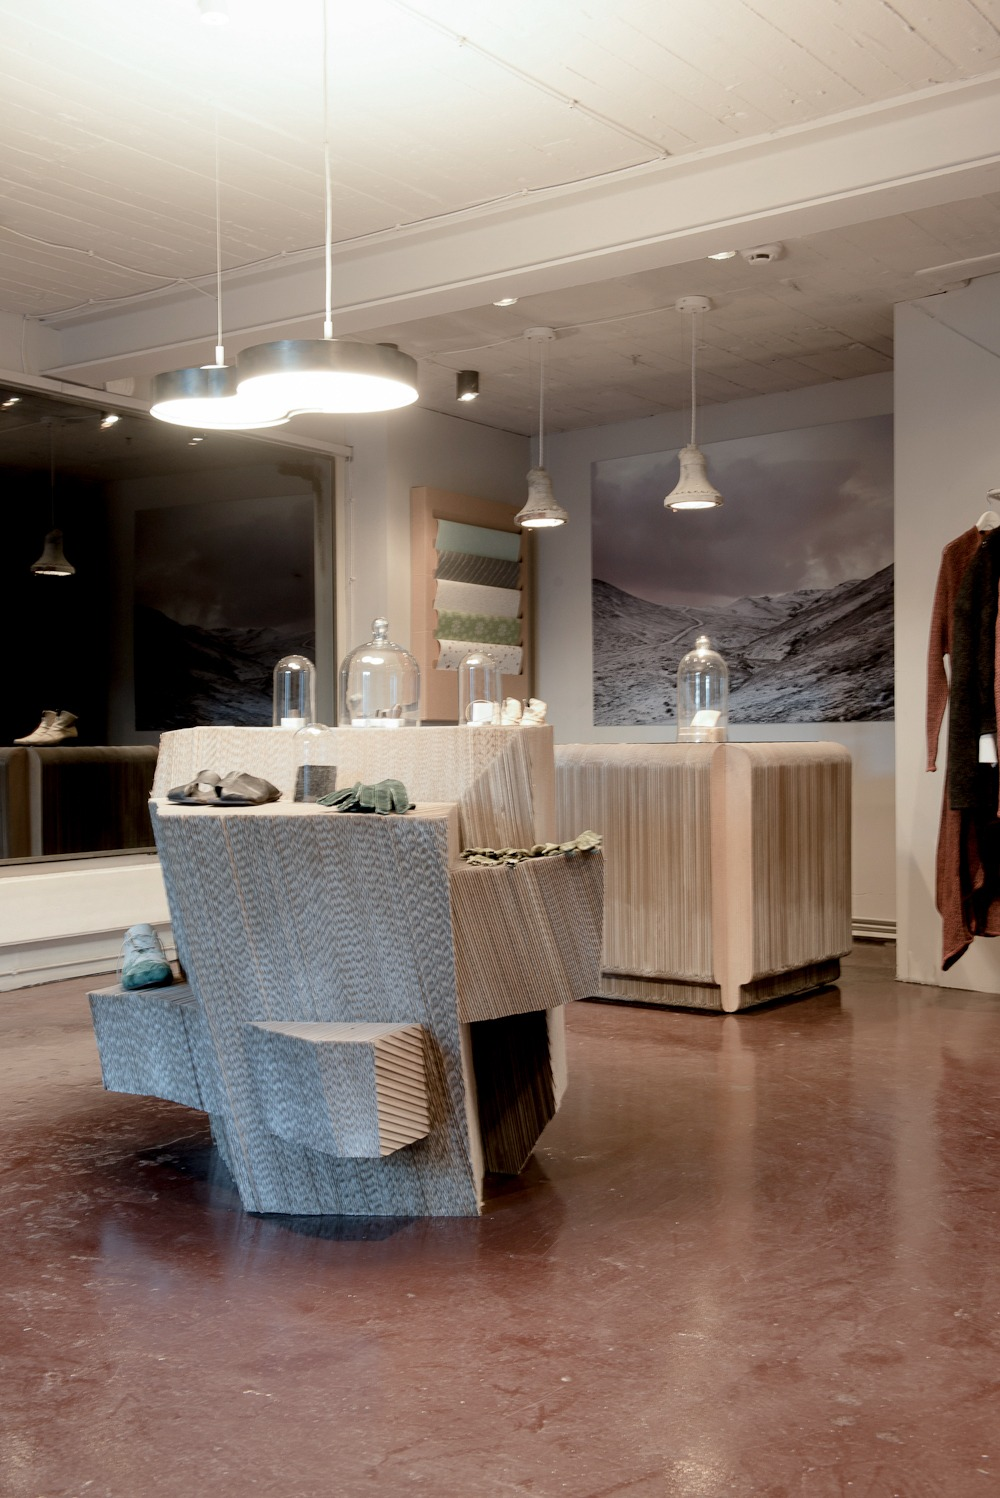 StyleZeitgeist The New Sruli Recht Boutique in Iceland Retail  review_s   StyleZeitgeist The New Sruli Recht Boutique in Iceland Retail  review_s   StyleZeitgeist The New Sruli Recht Boutique in Iceland Retail  review_s